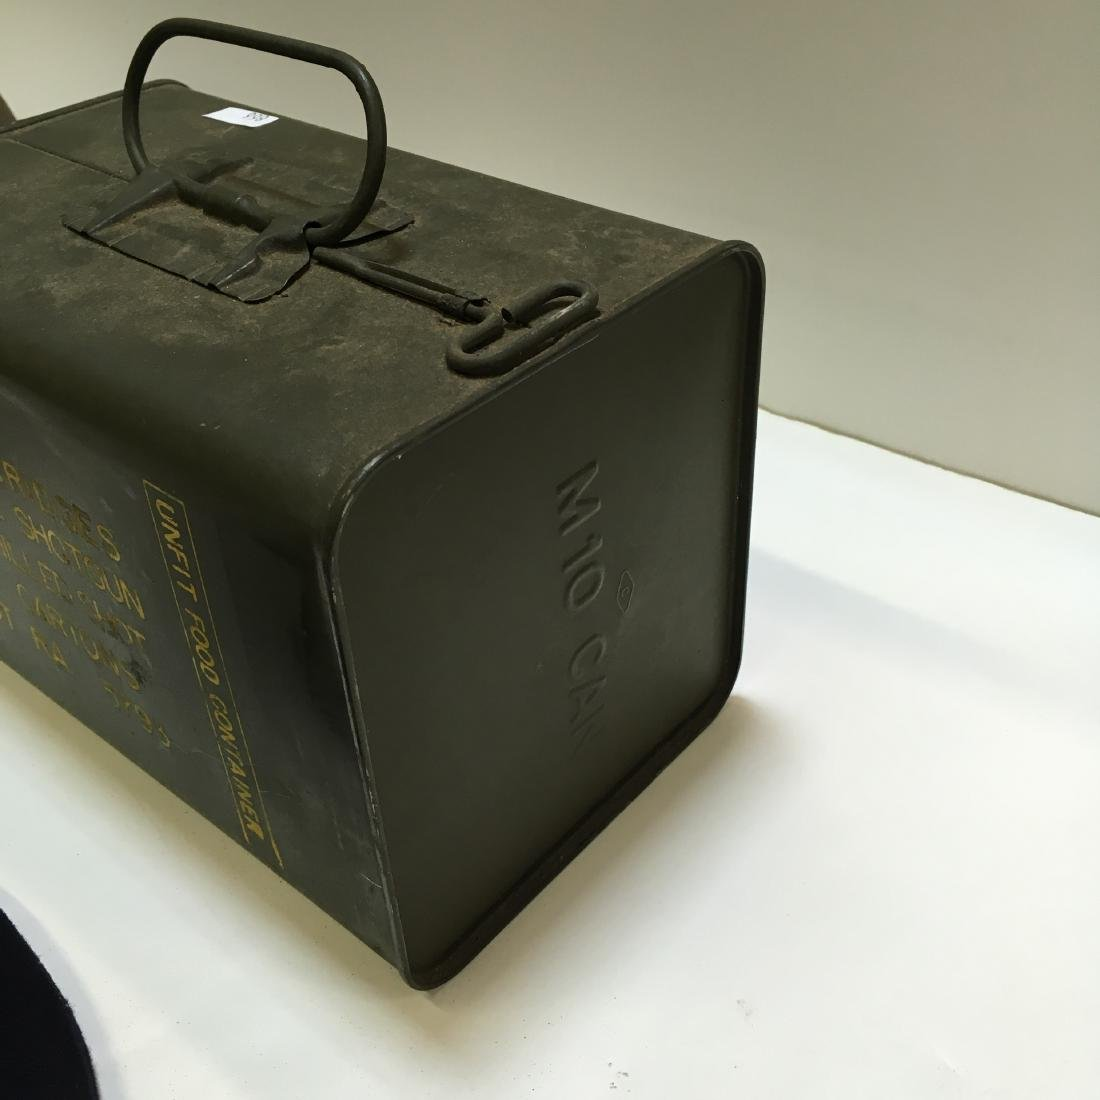 120 RD 12 G RA SPAM CAN AMMO +3 VTG MILITARY ITEMS - 7